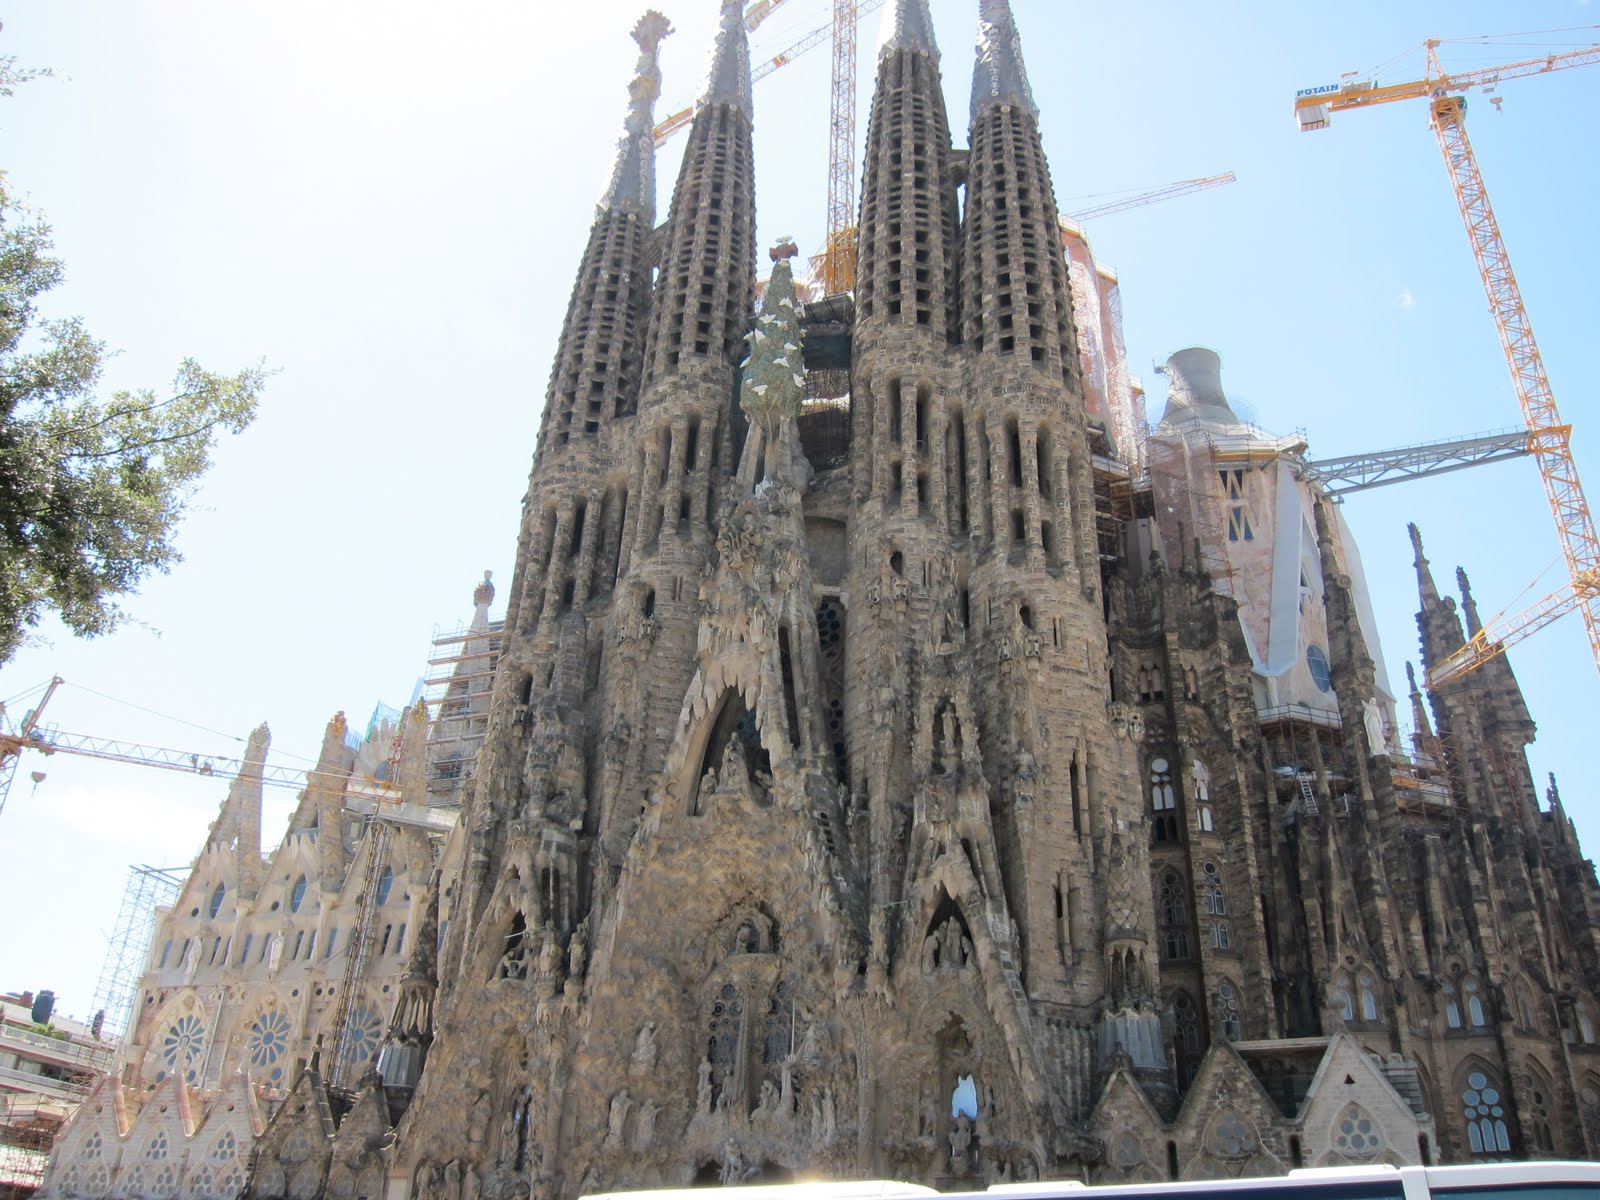 Exterior: Lisa Elsewhere: Sagrada Familia